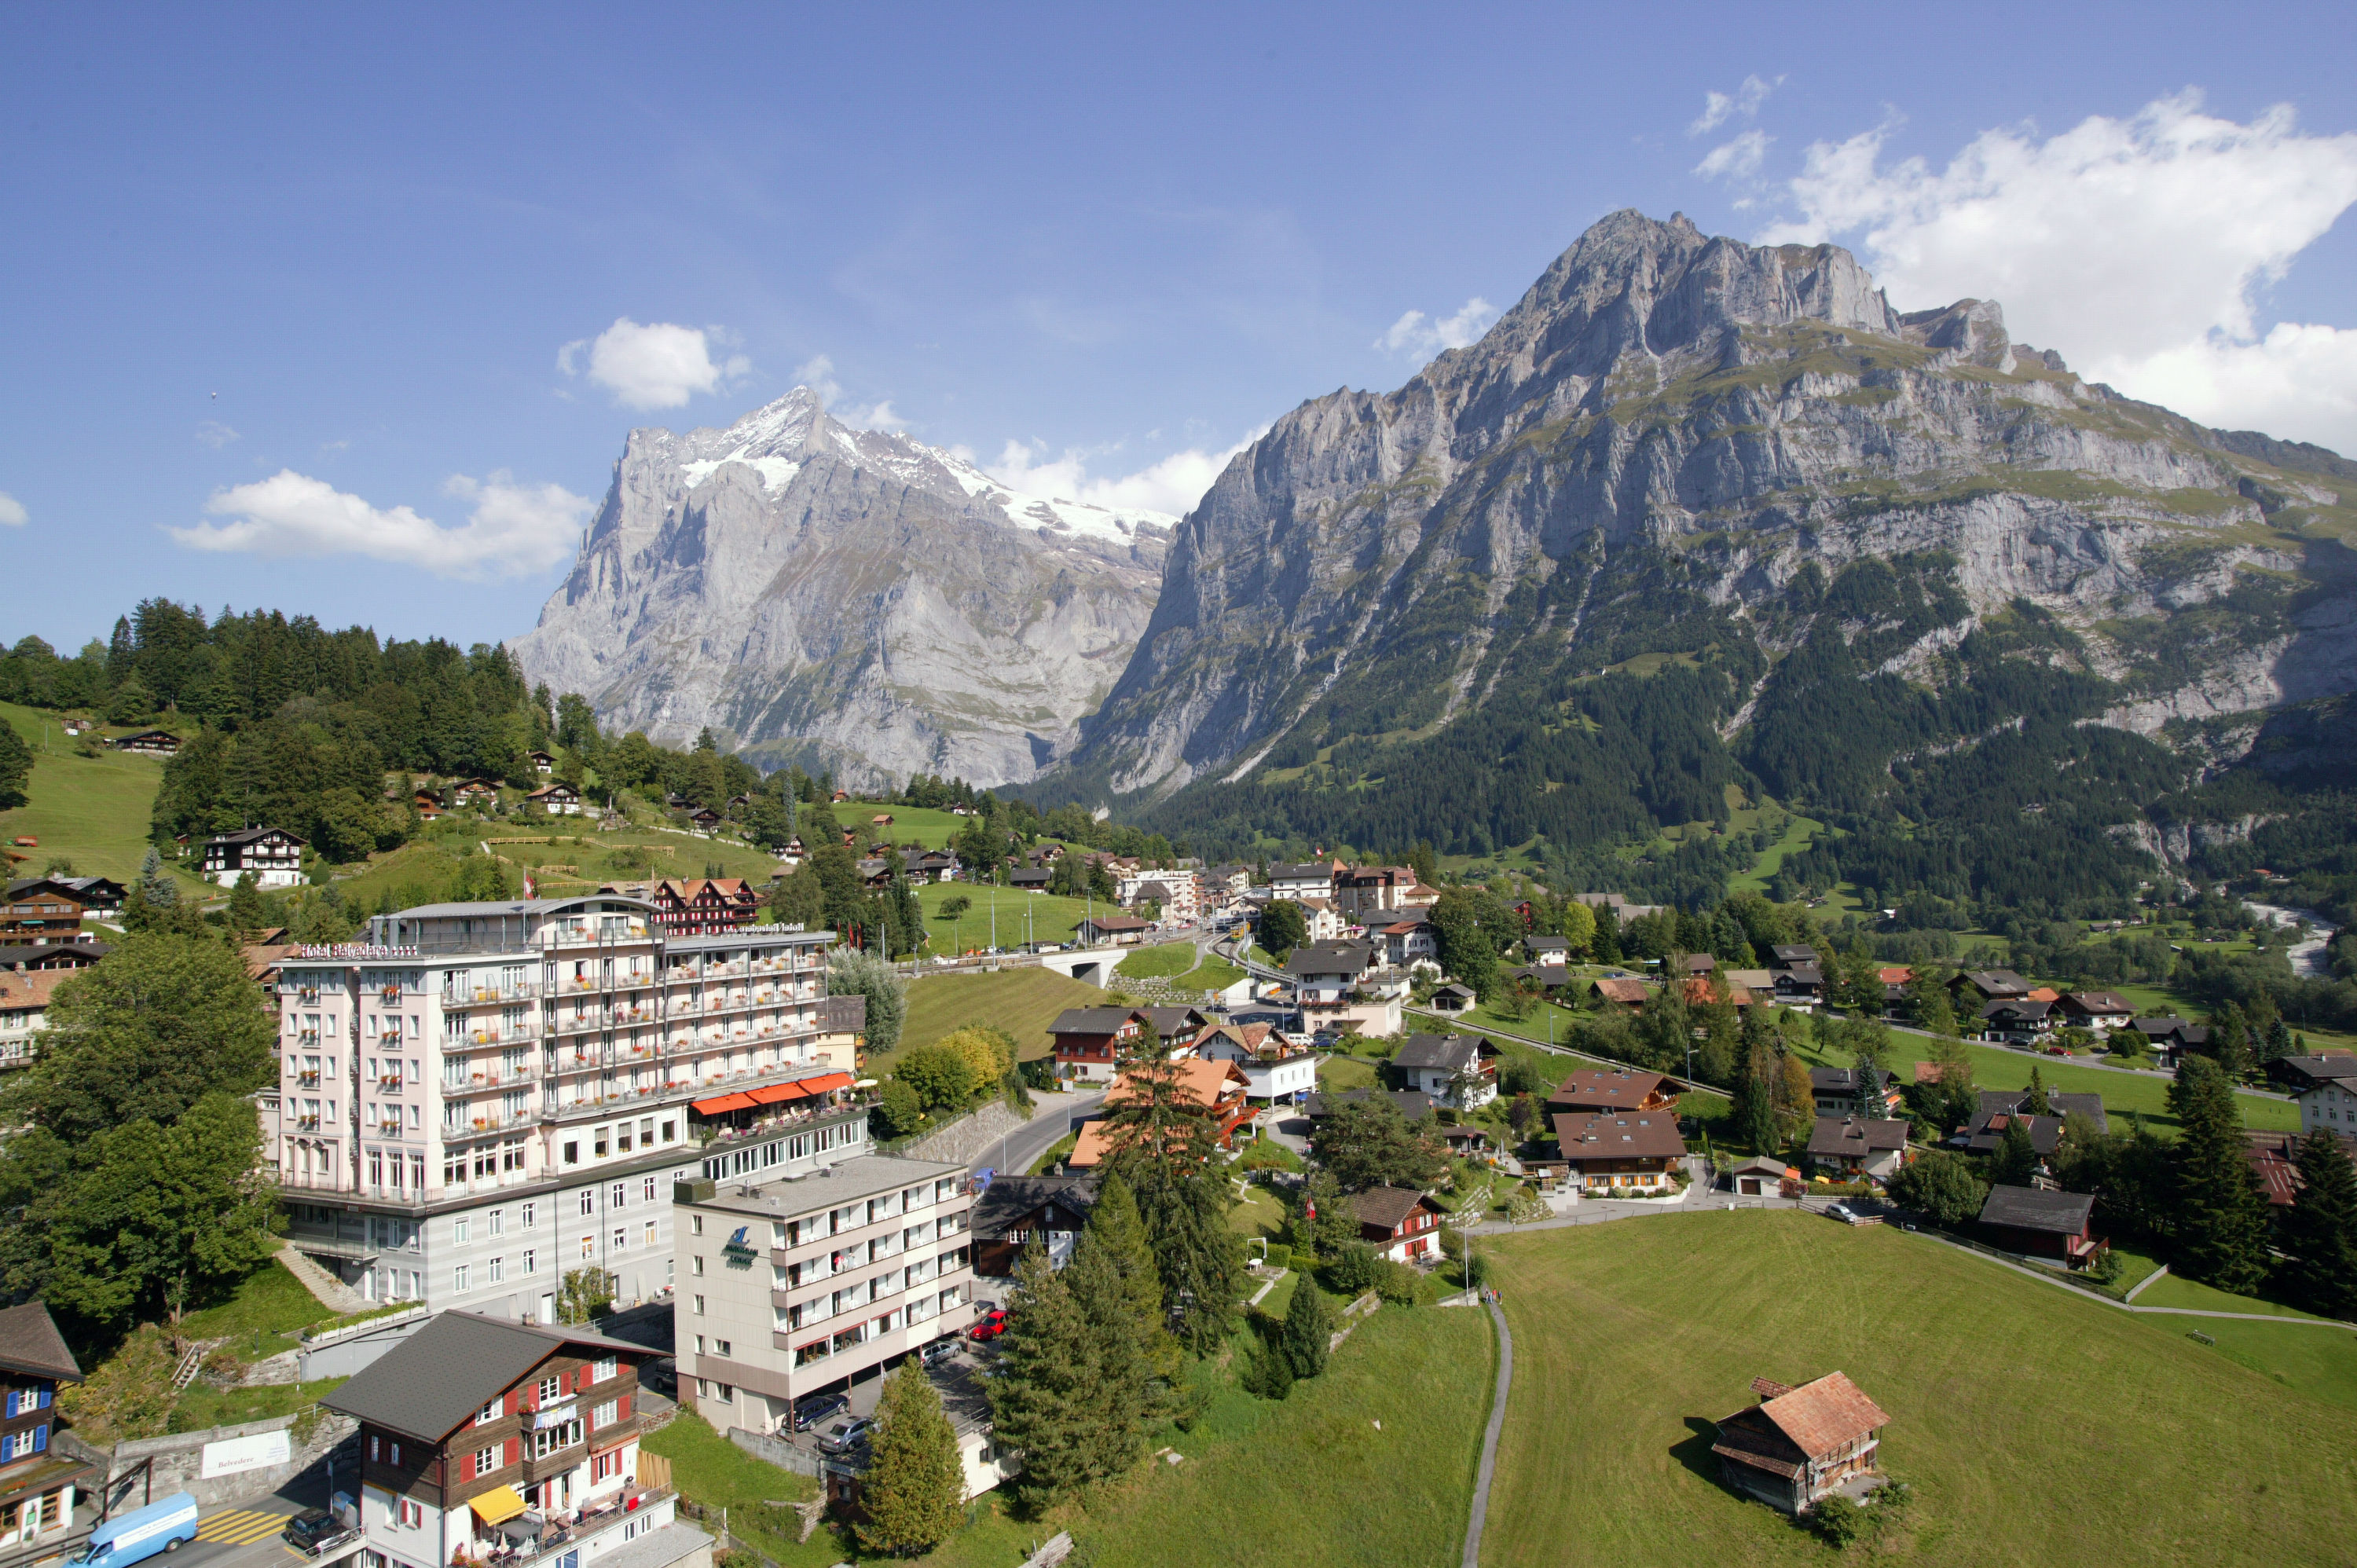 Hotel Belvedere Grindelwald in summer · mountains Wetterhorn and Mettenberg